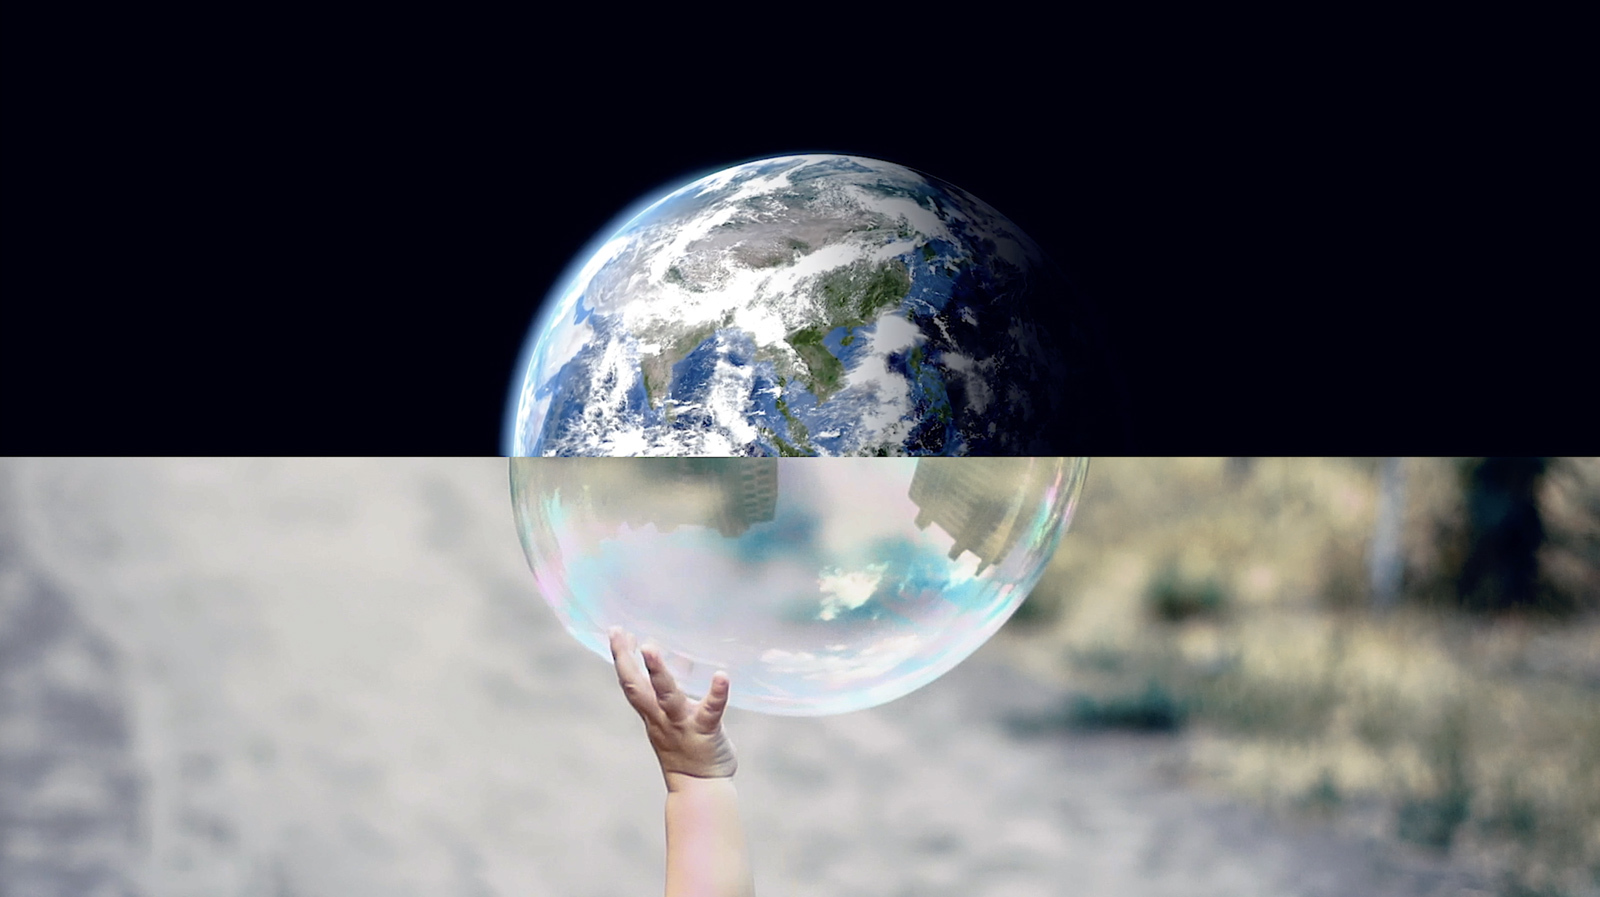 Photo composition: Earth from space on top, bubble with child's hand reaching on bottom.